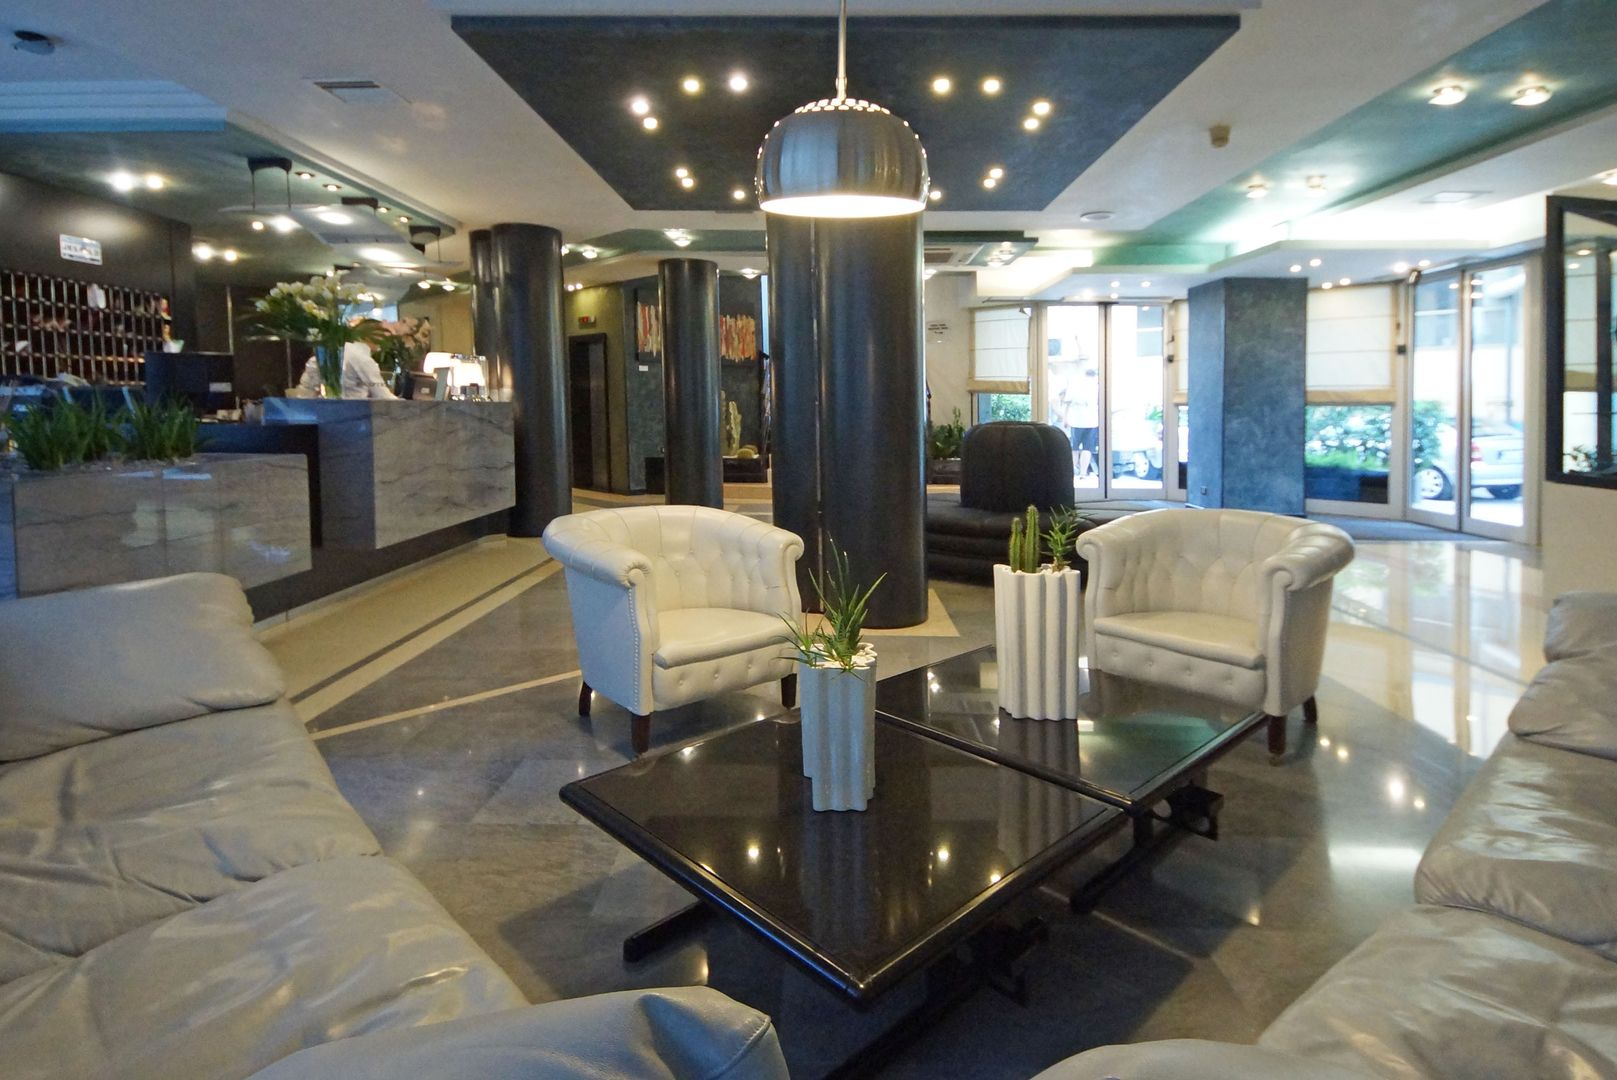 Hotel jesolo italien direkt am strand relax am meer in for Boutique hotel am strand